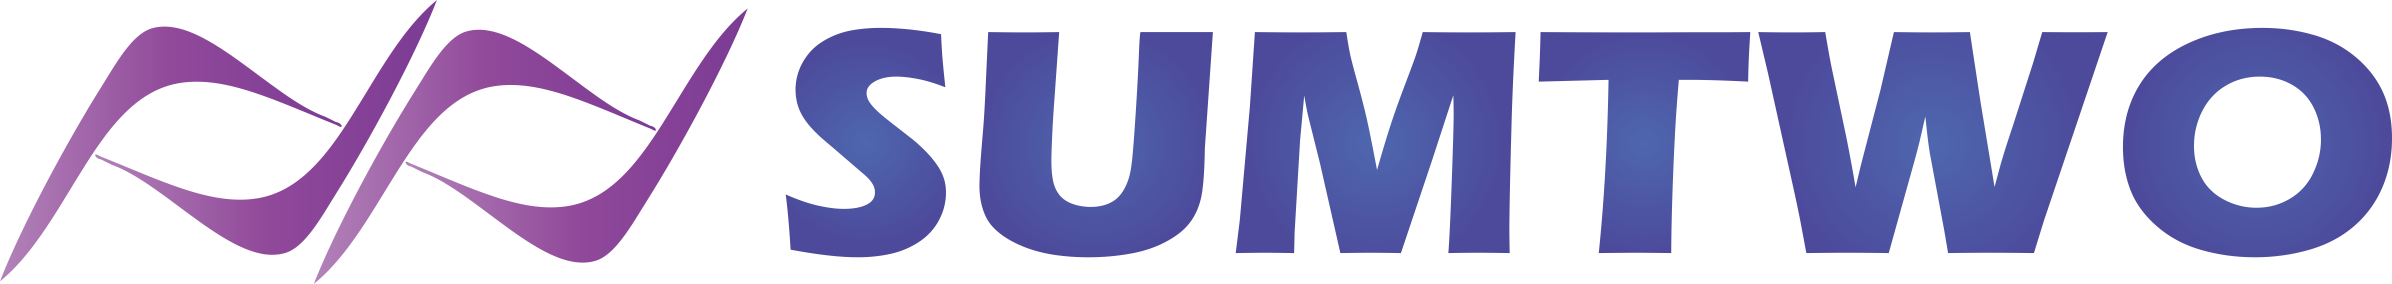 sumtwo-logo.png